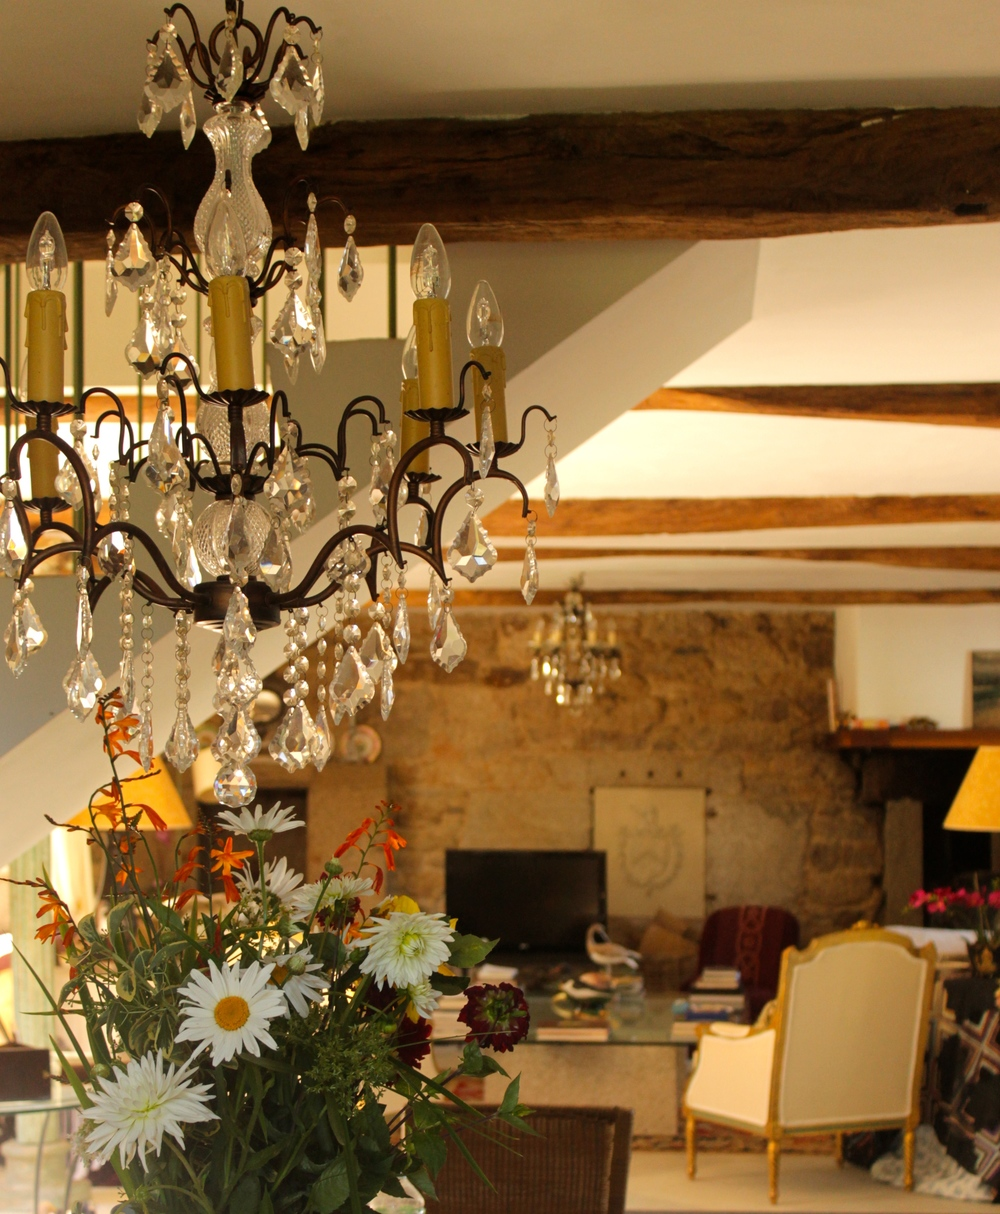 The beautiful house in Lobeiros   When you think of Spain and Spanish food, what comes immediately to mind? For me it's Barcelona, Madrid, paella and boquerones. Few think of northern Spain; Galicia and its lush landscape, Celtic heritage and seafood menus.